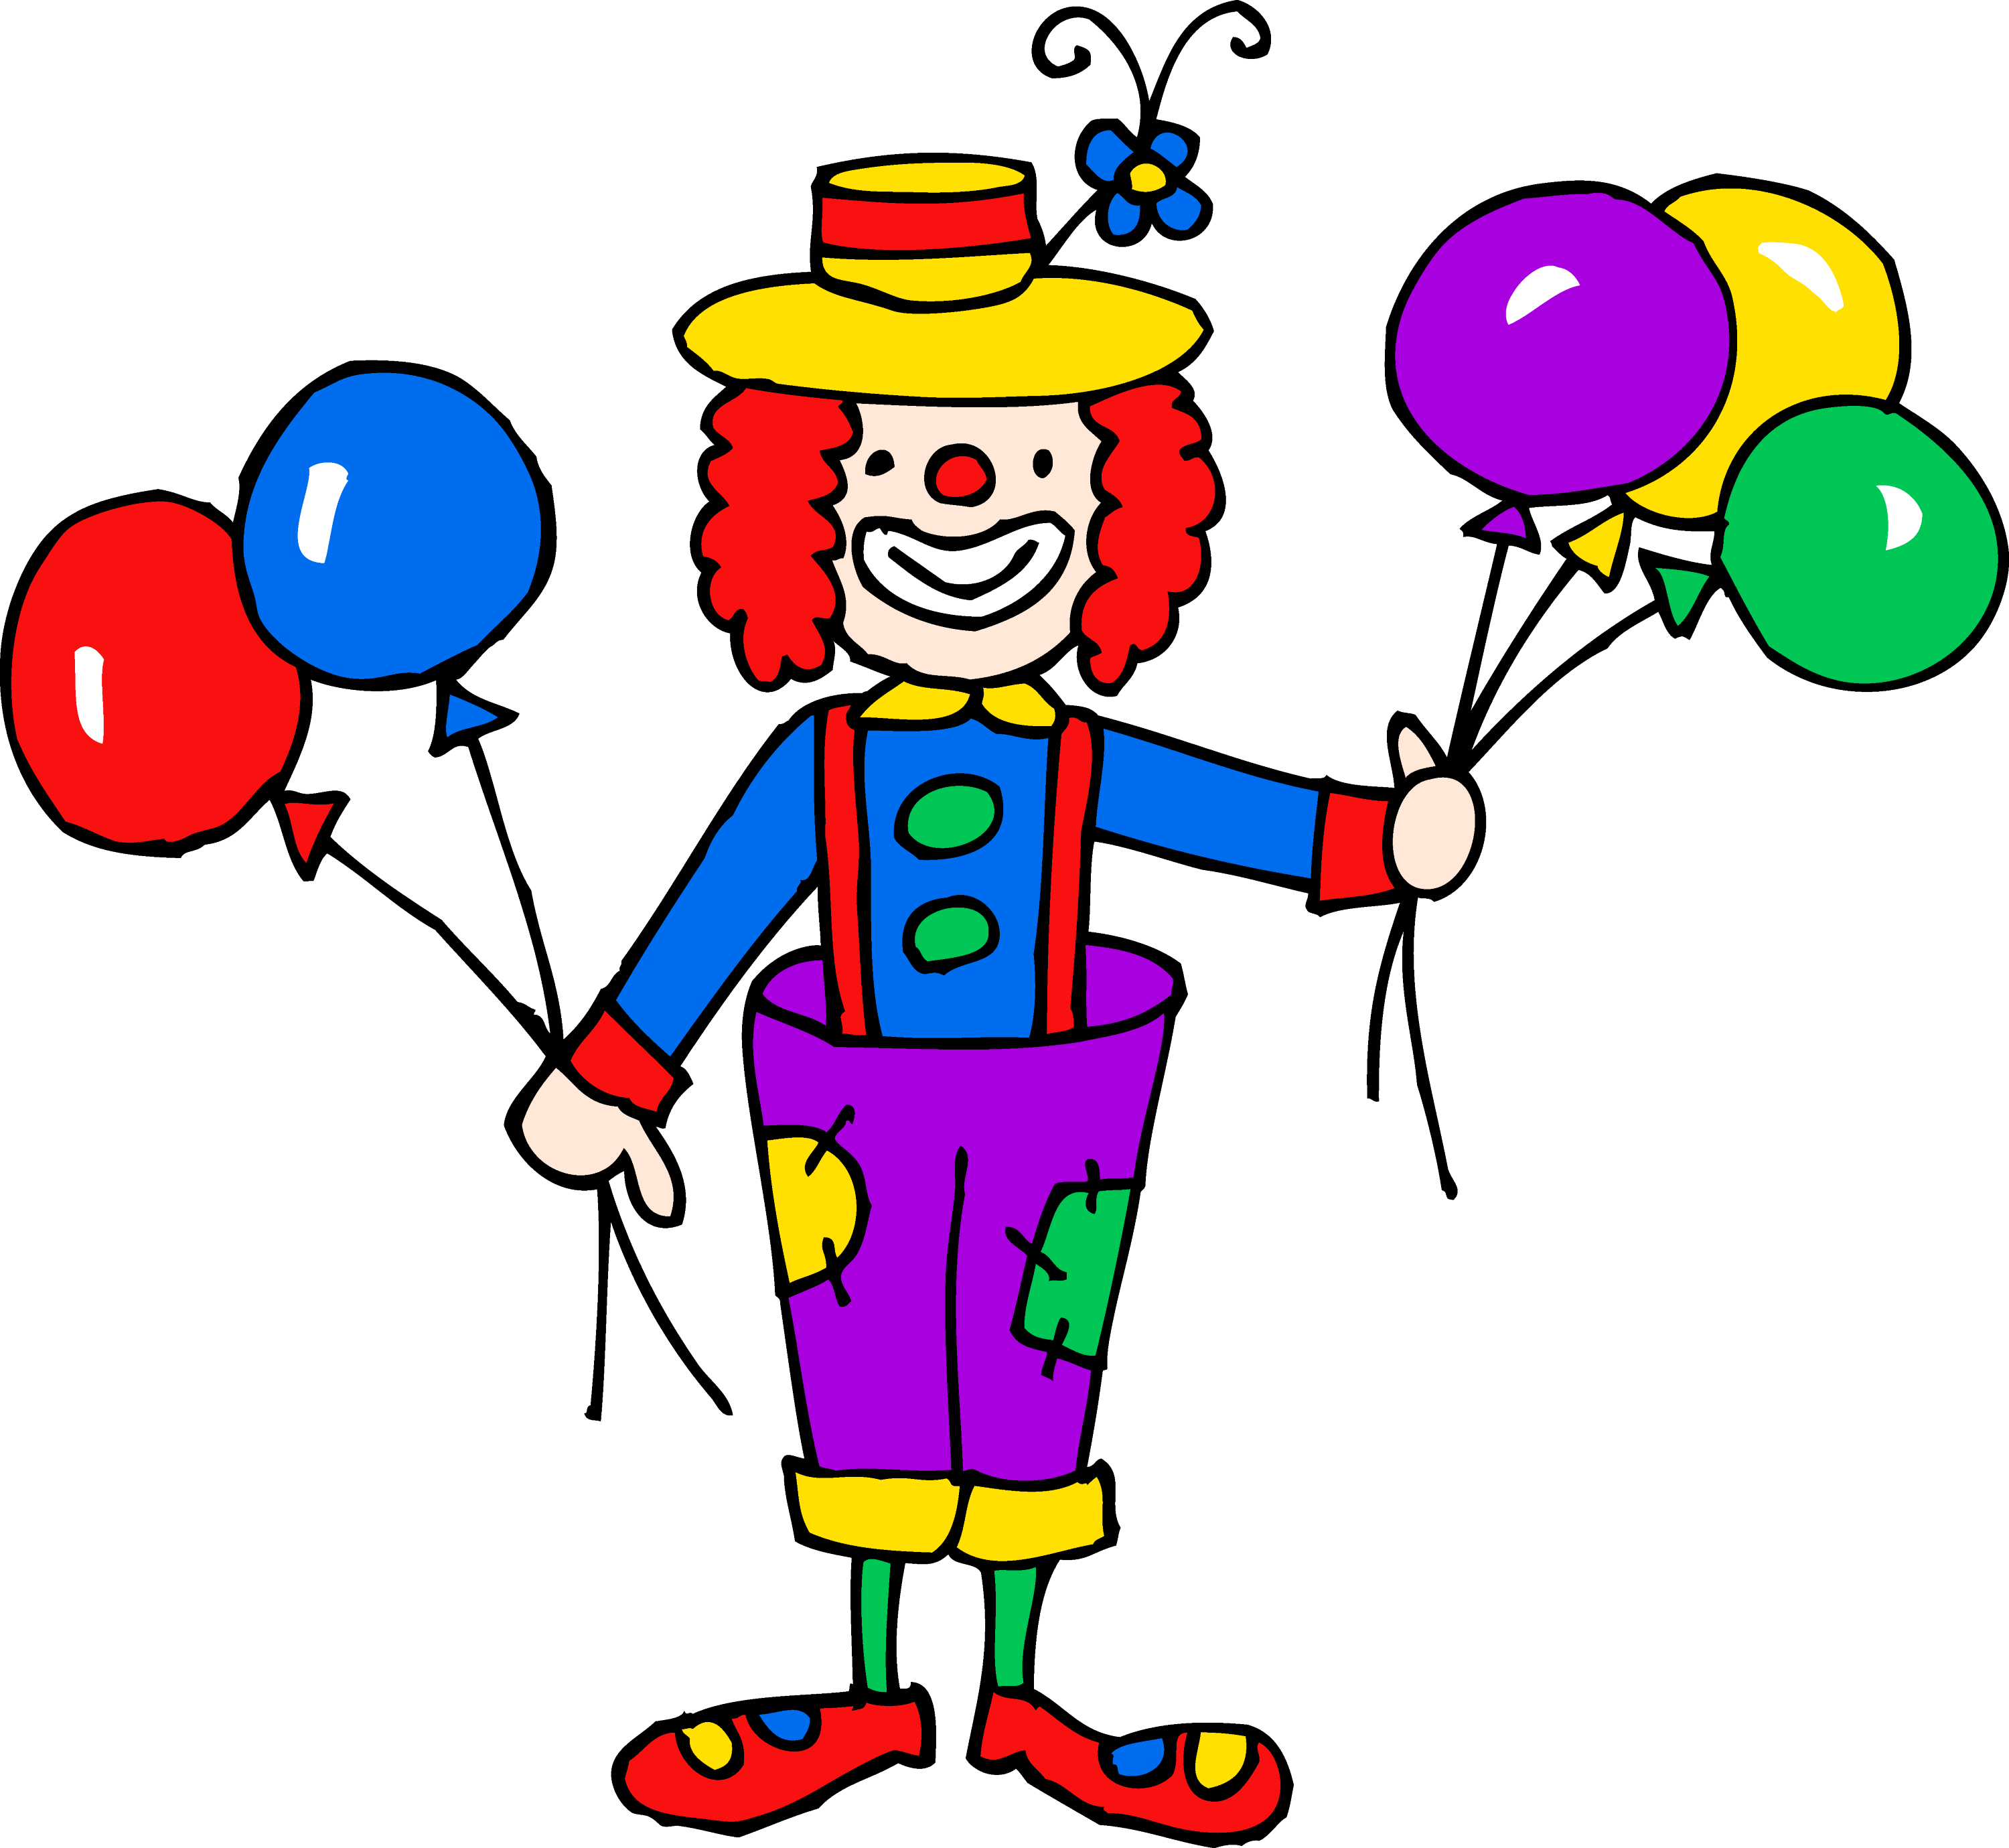 cute colorful clown clipart free clip art rh sweetclipart com free crown clip art download free clown clip art images